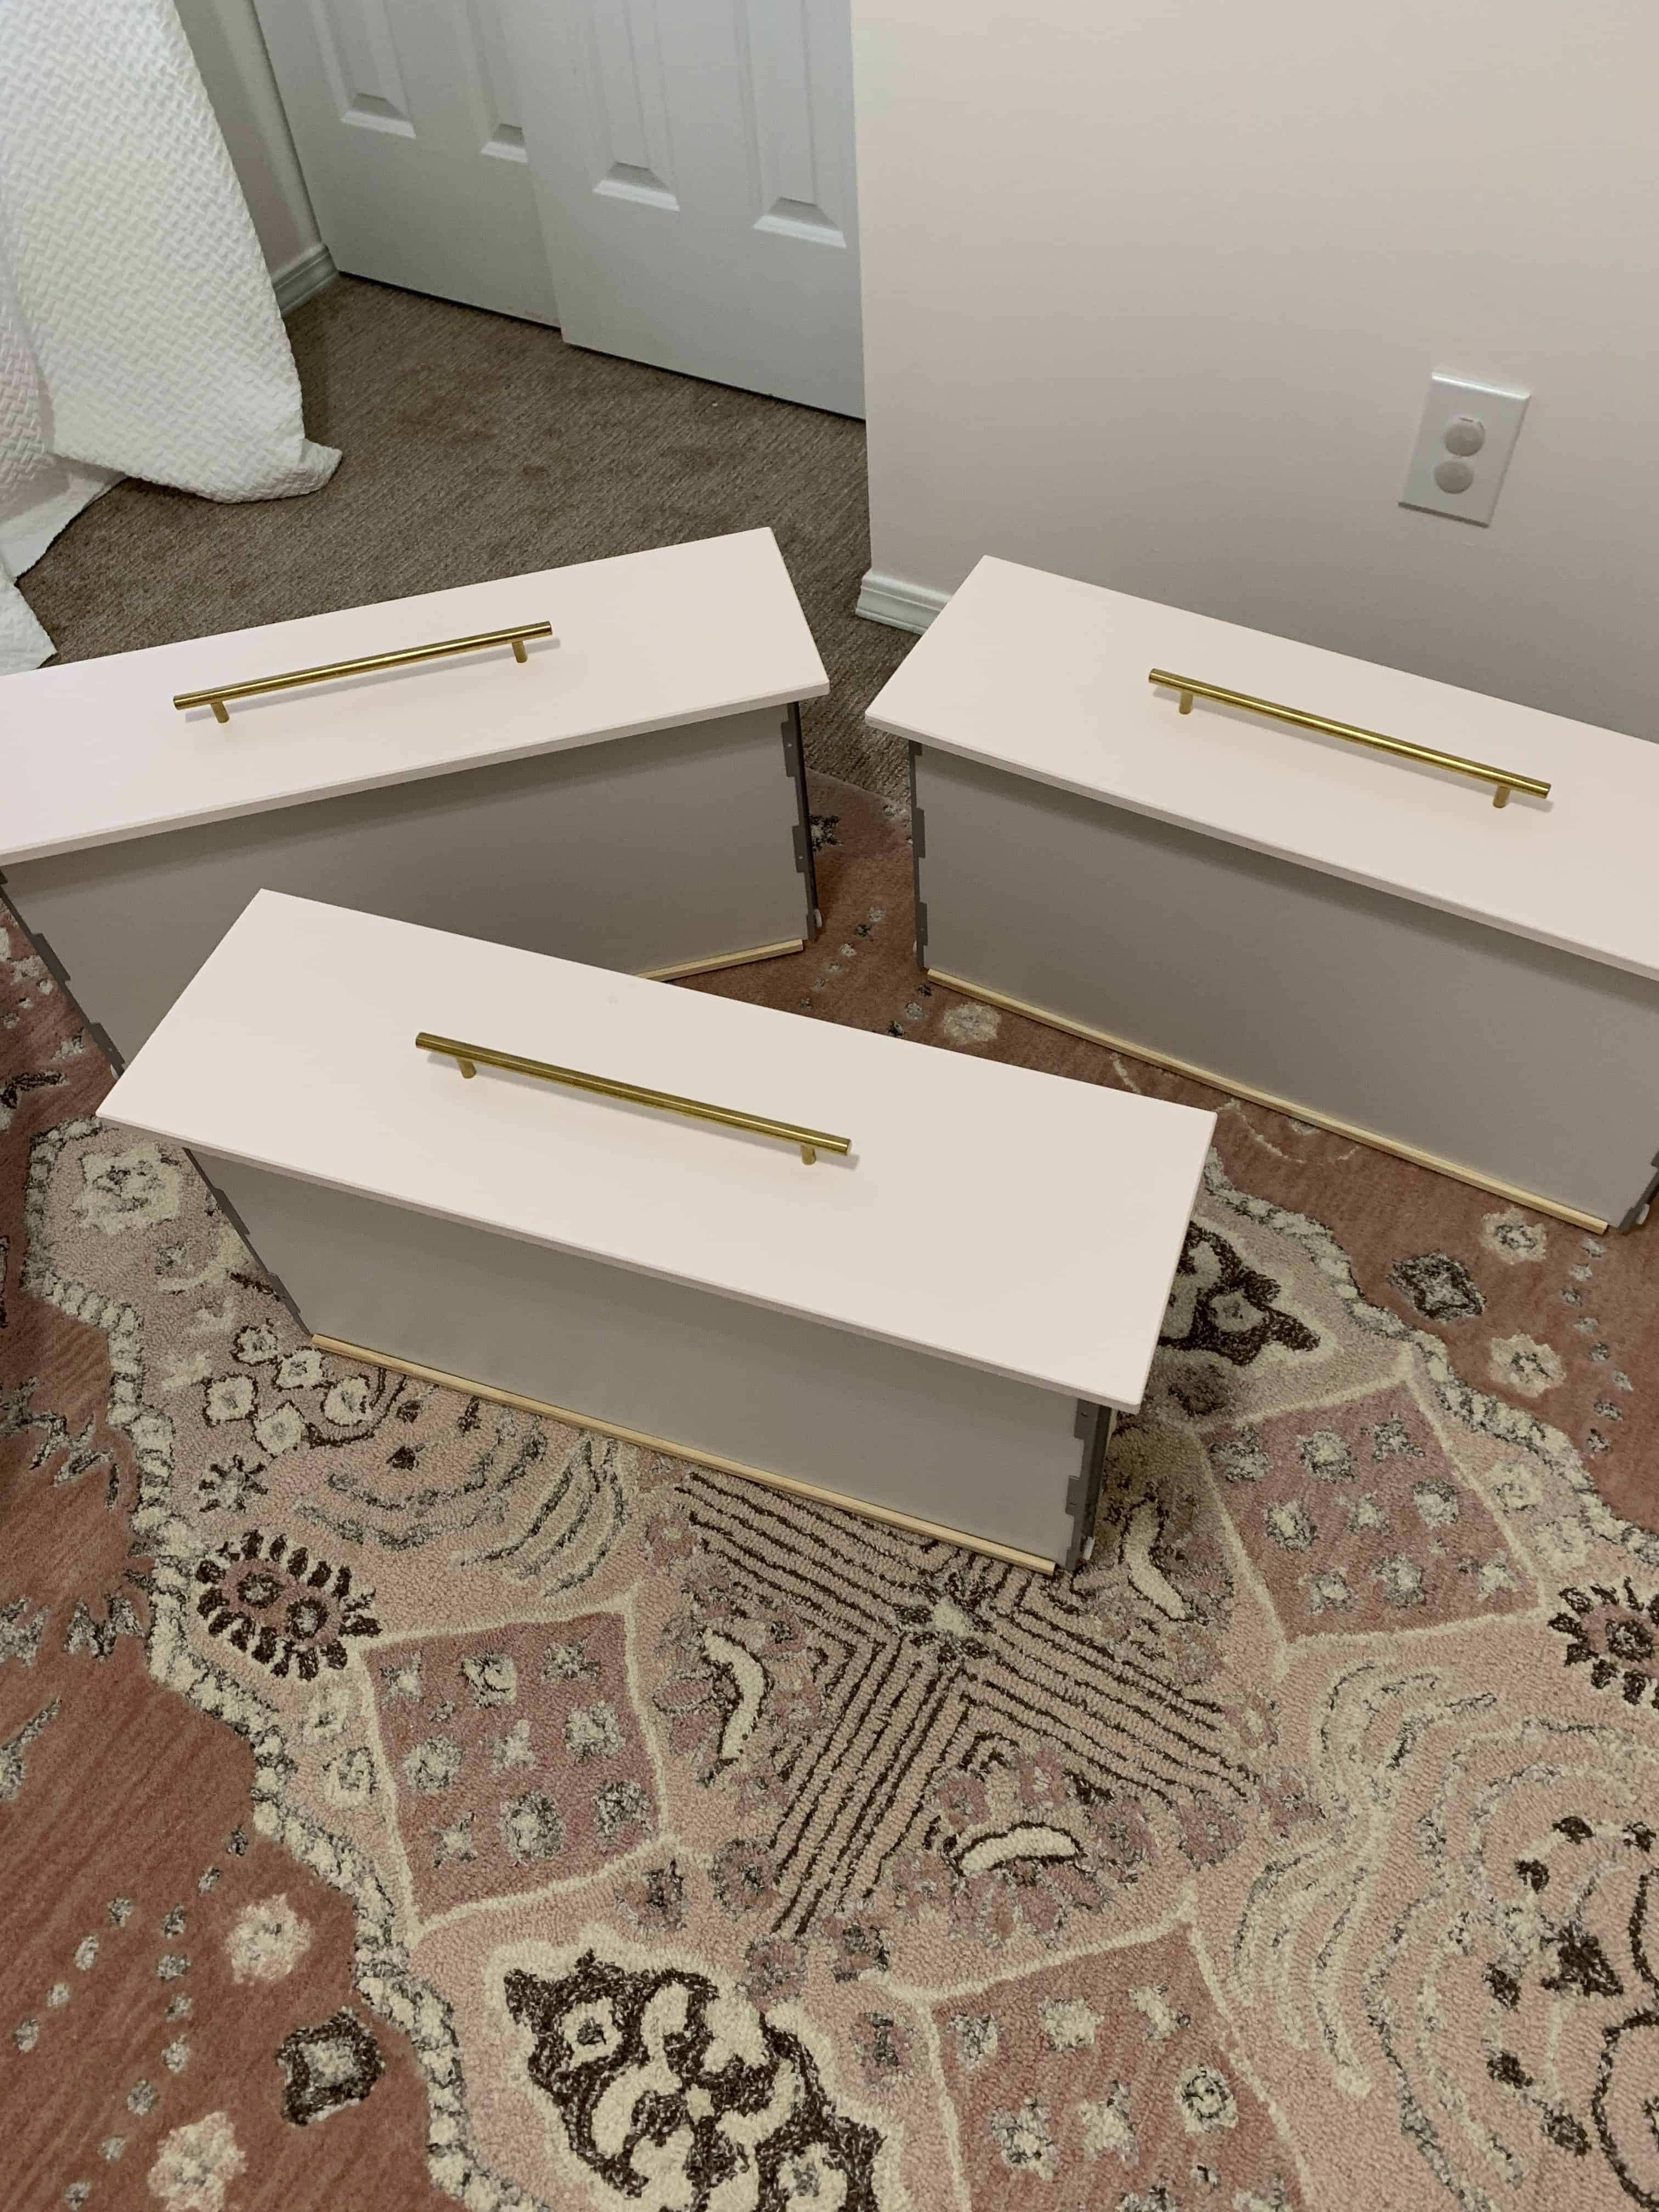 IKEA tarva dresser with gold pulls